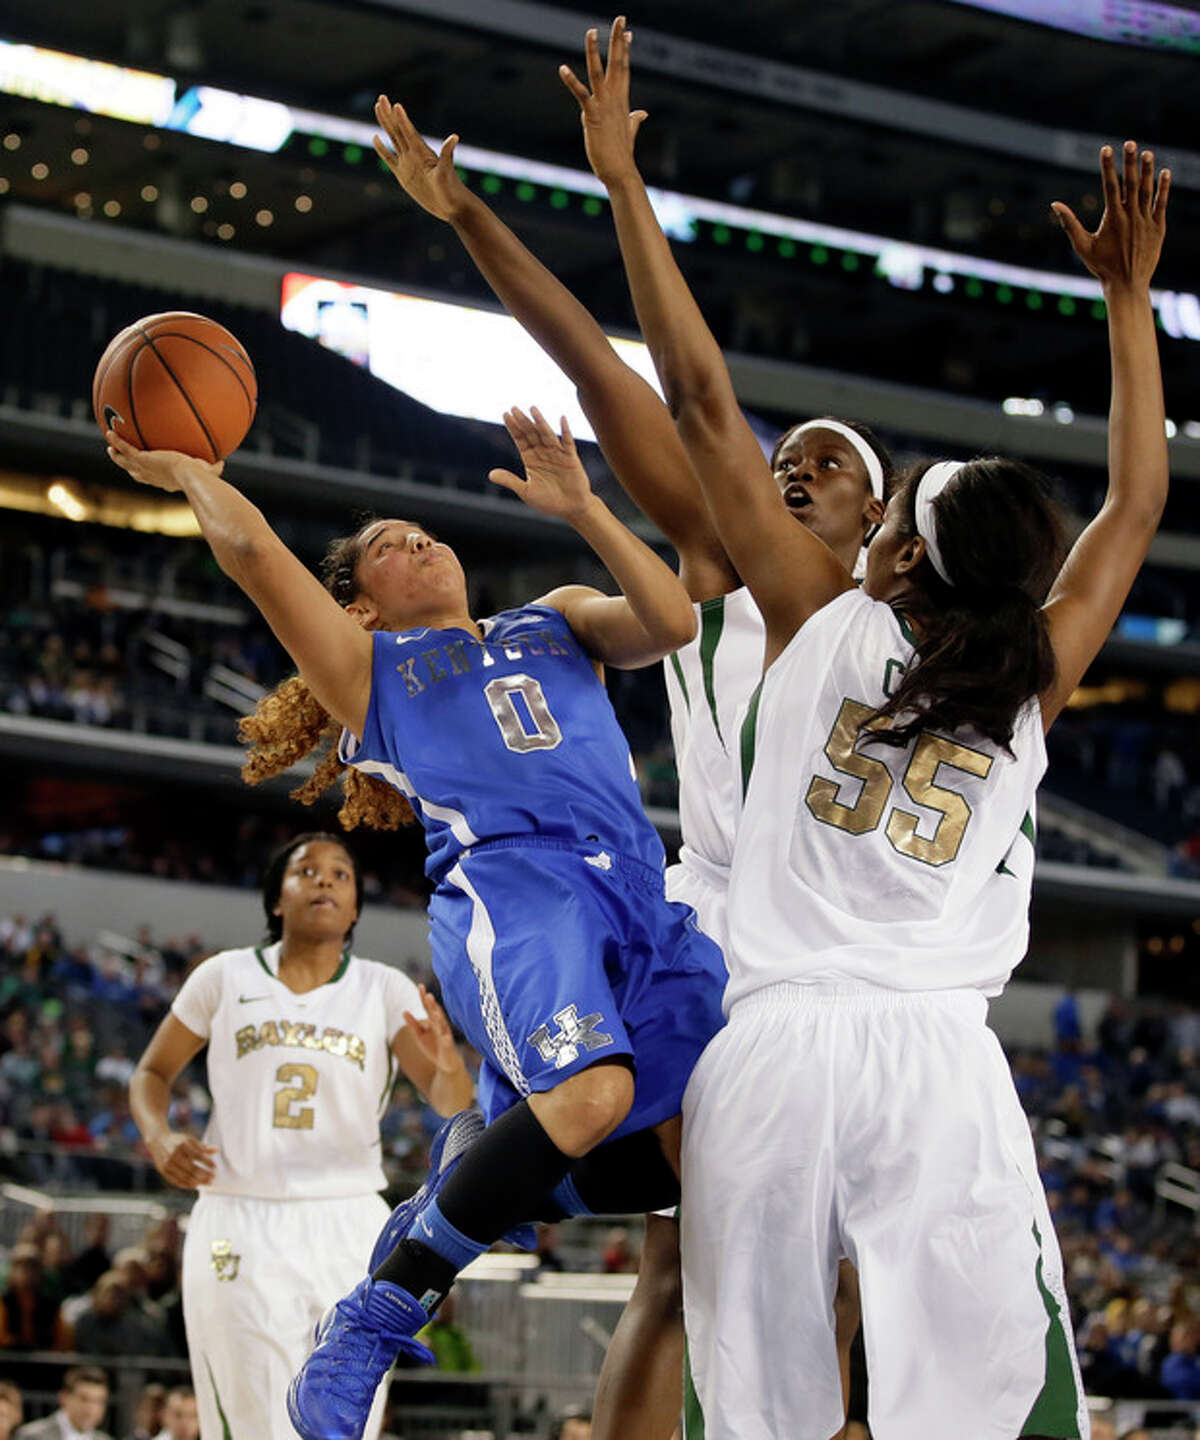 Kentucky's Jennifer O'Neill (0) goes up for a shot-attempt against Baylor's Khadijiah Cave (55) and Sune Agbuke, rear, as Niya Johnson (2) watches in overtime of an NCAA college basketball game, Friday, Dec. 6, 2013, in Arlington, Texas. O'Neill lead her team in scoring with 43-points in the 133-130 four-overtime win over Baylor. (AP Photo/Tony Gutierrez)